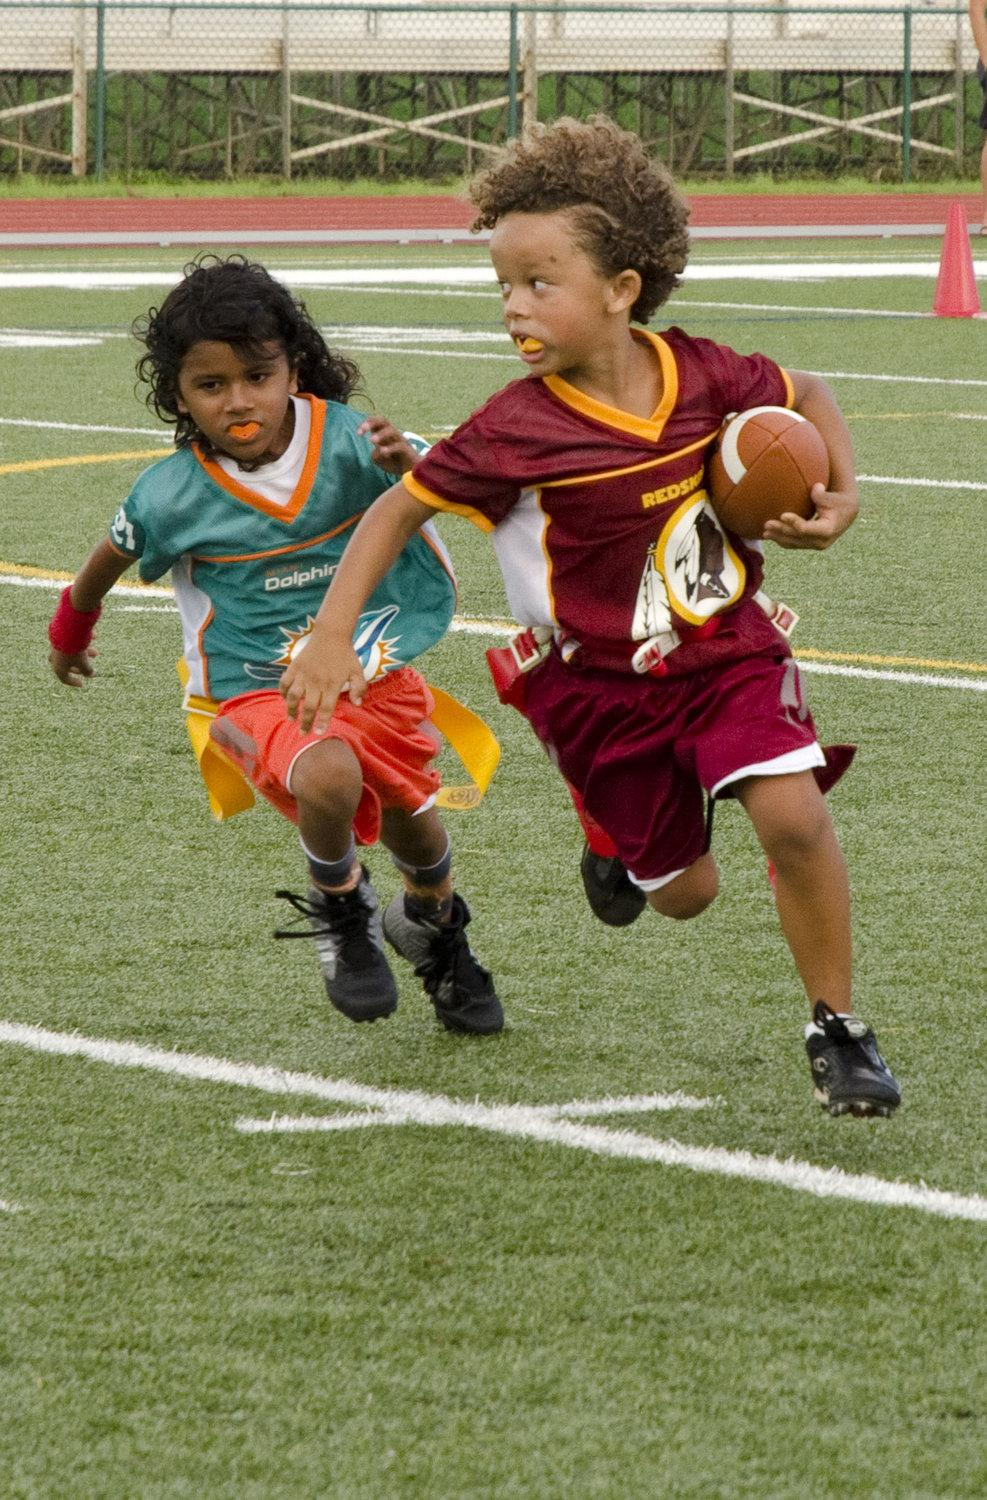 Mini Mite Miami Dolphins player Isaias Gonzalez II (left) pursues Mini Mite Washington Redskins player Malachai Cabrellis during a youth flag football game at Pop Warner Field, Oct. 25, 2014. The Redskins defeated the Dolphins. The youth flag football season runs through November. (U.S. Marine Corps photo by Kristen Wong)